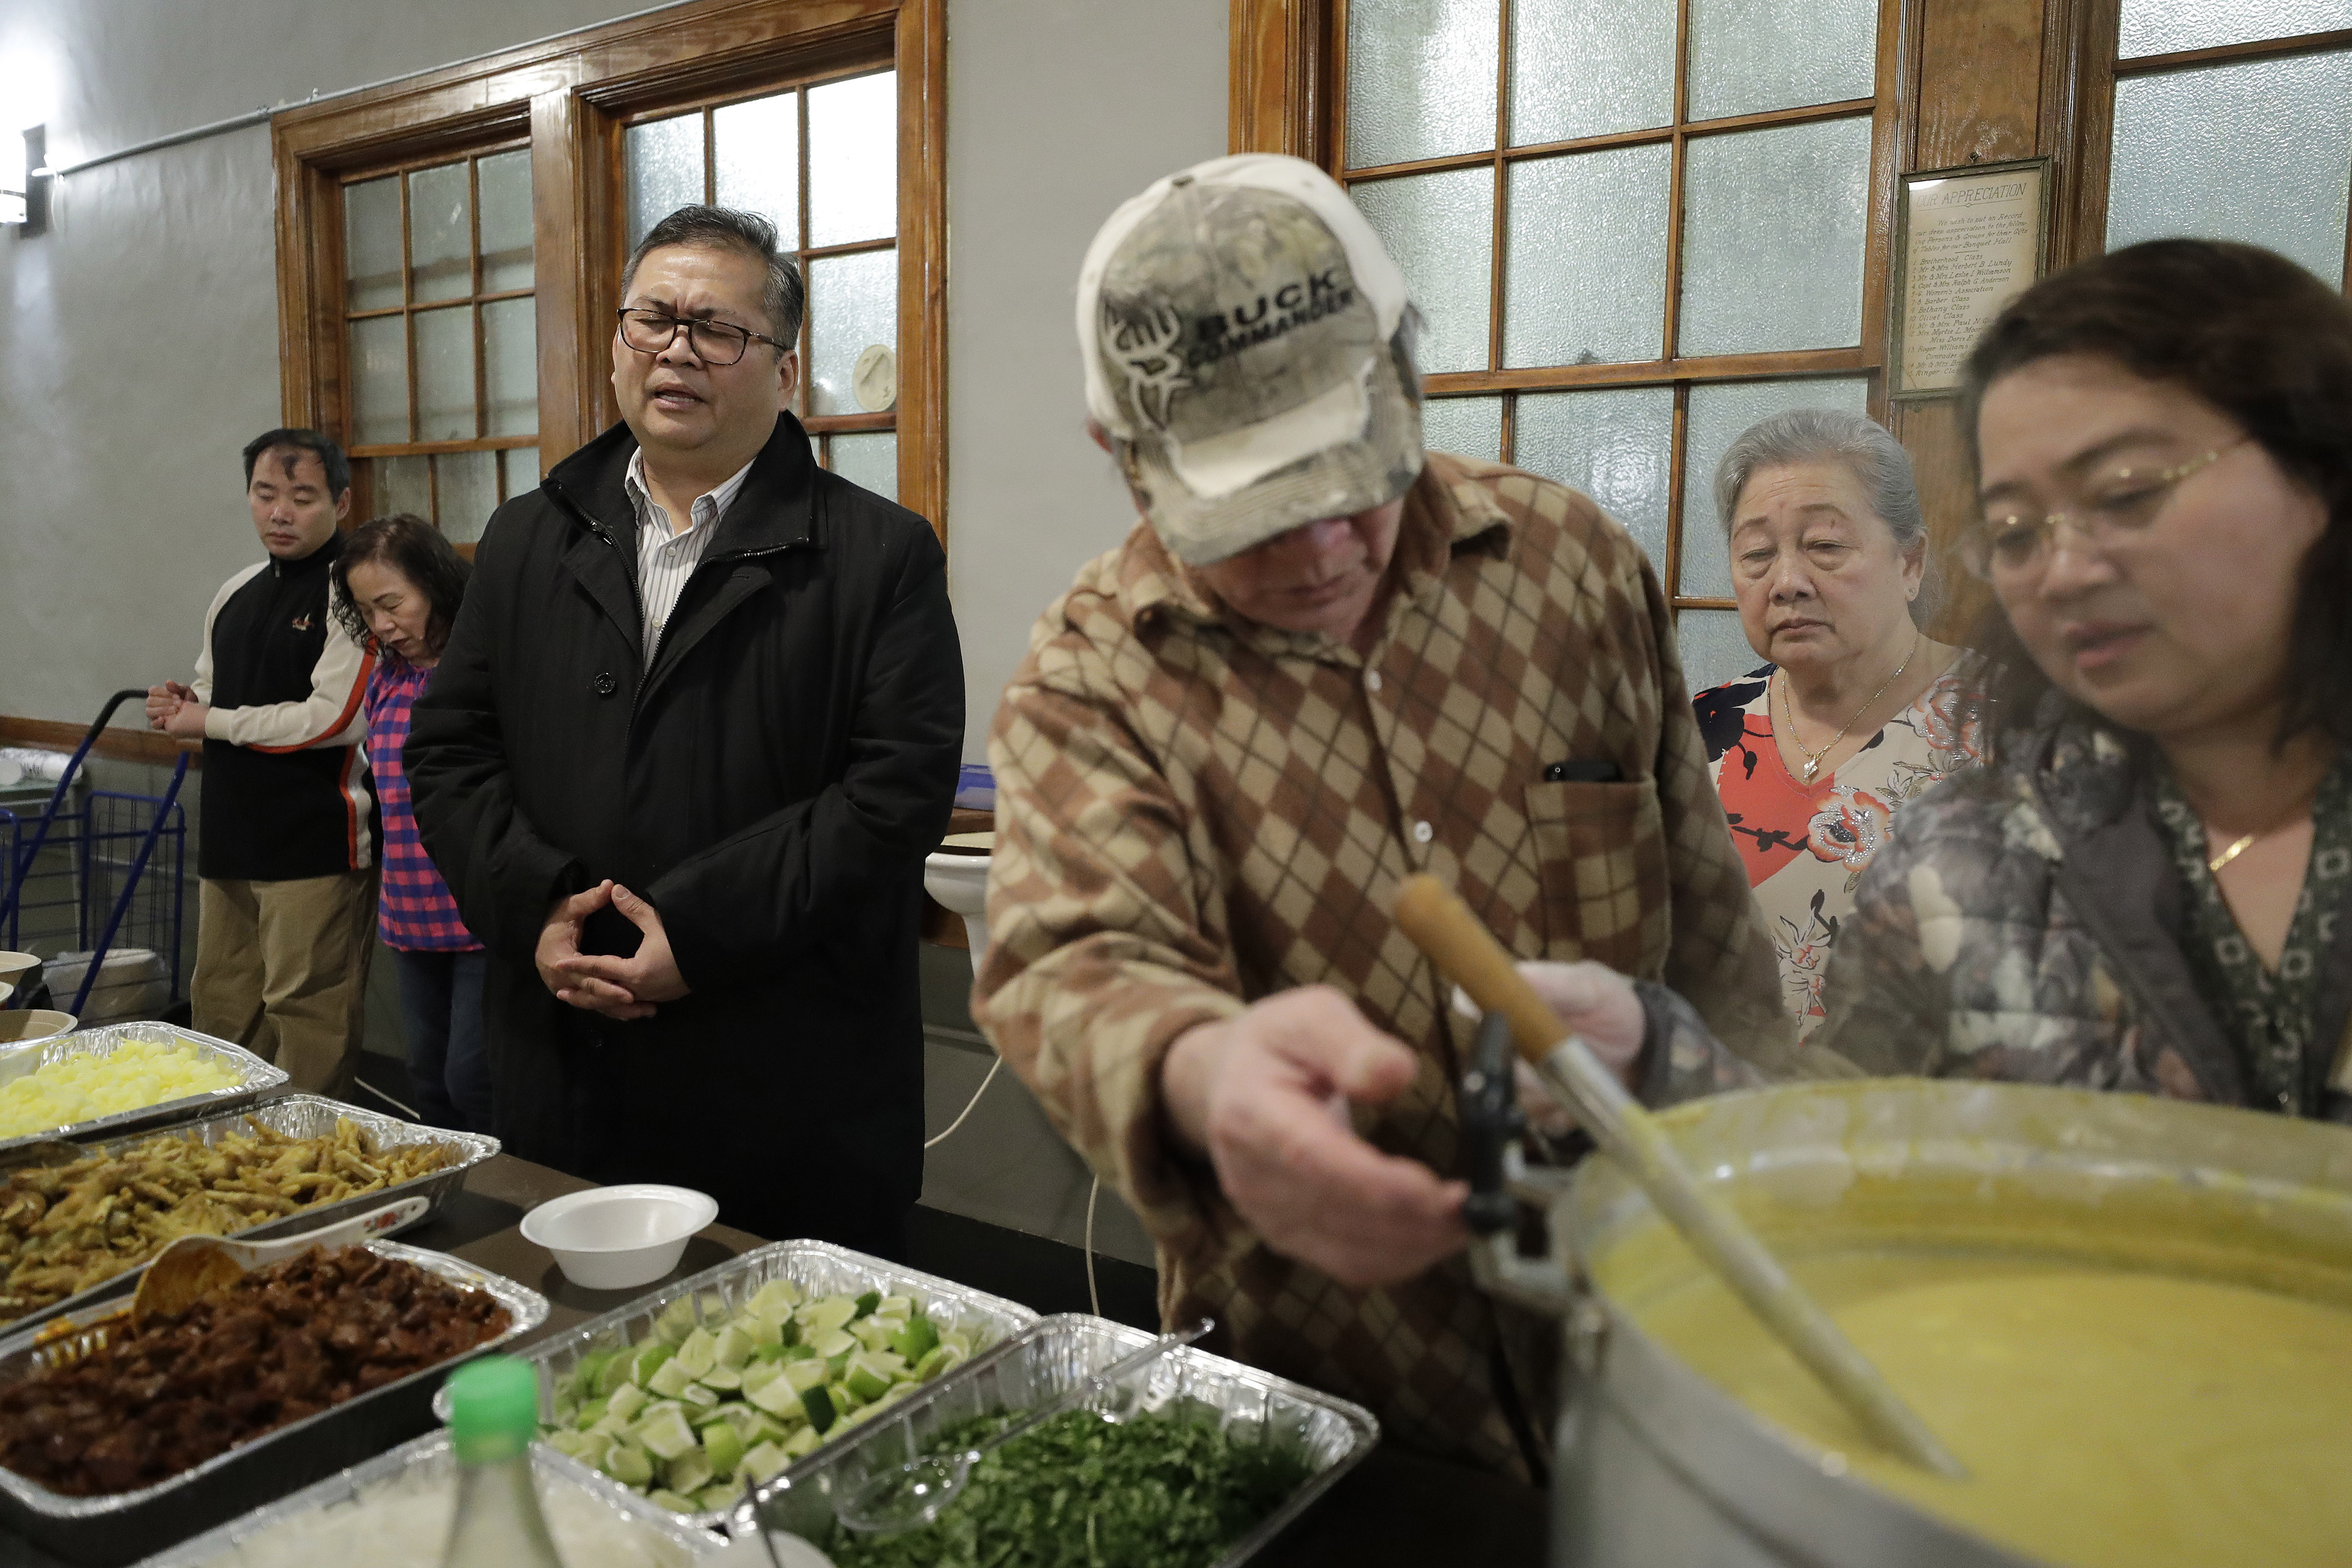 Baptist Pastor Clifford Maung, third from left, recites a prayer as Chin Sai, center, and Myint Myint Swe, right, prepare food following services at the Overseas Burmese Christian Fellowship in Boston on Feb. 16, 2020.